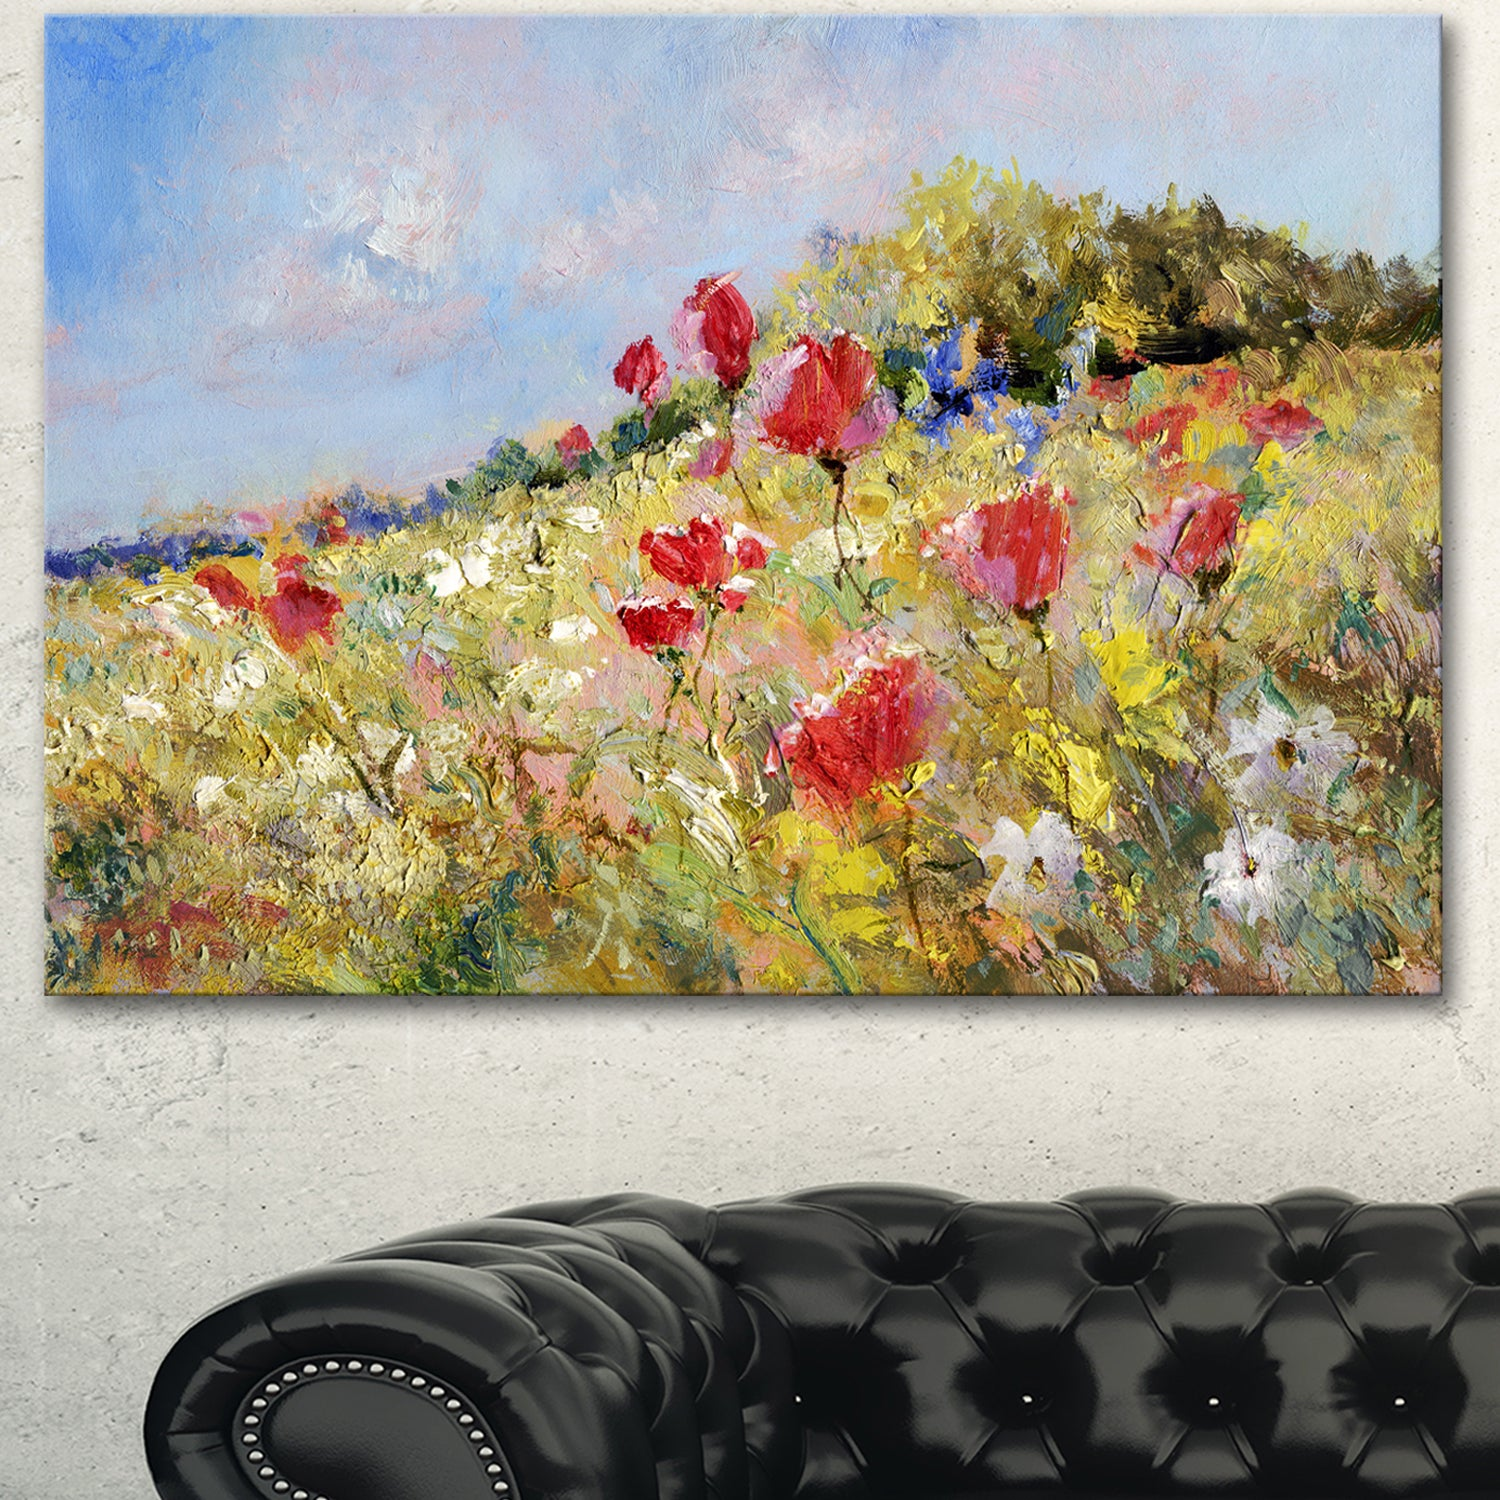 Designart \'Painted Poppies on Summer Meadow\' Landscape Wall Art Print Canvas - Green